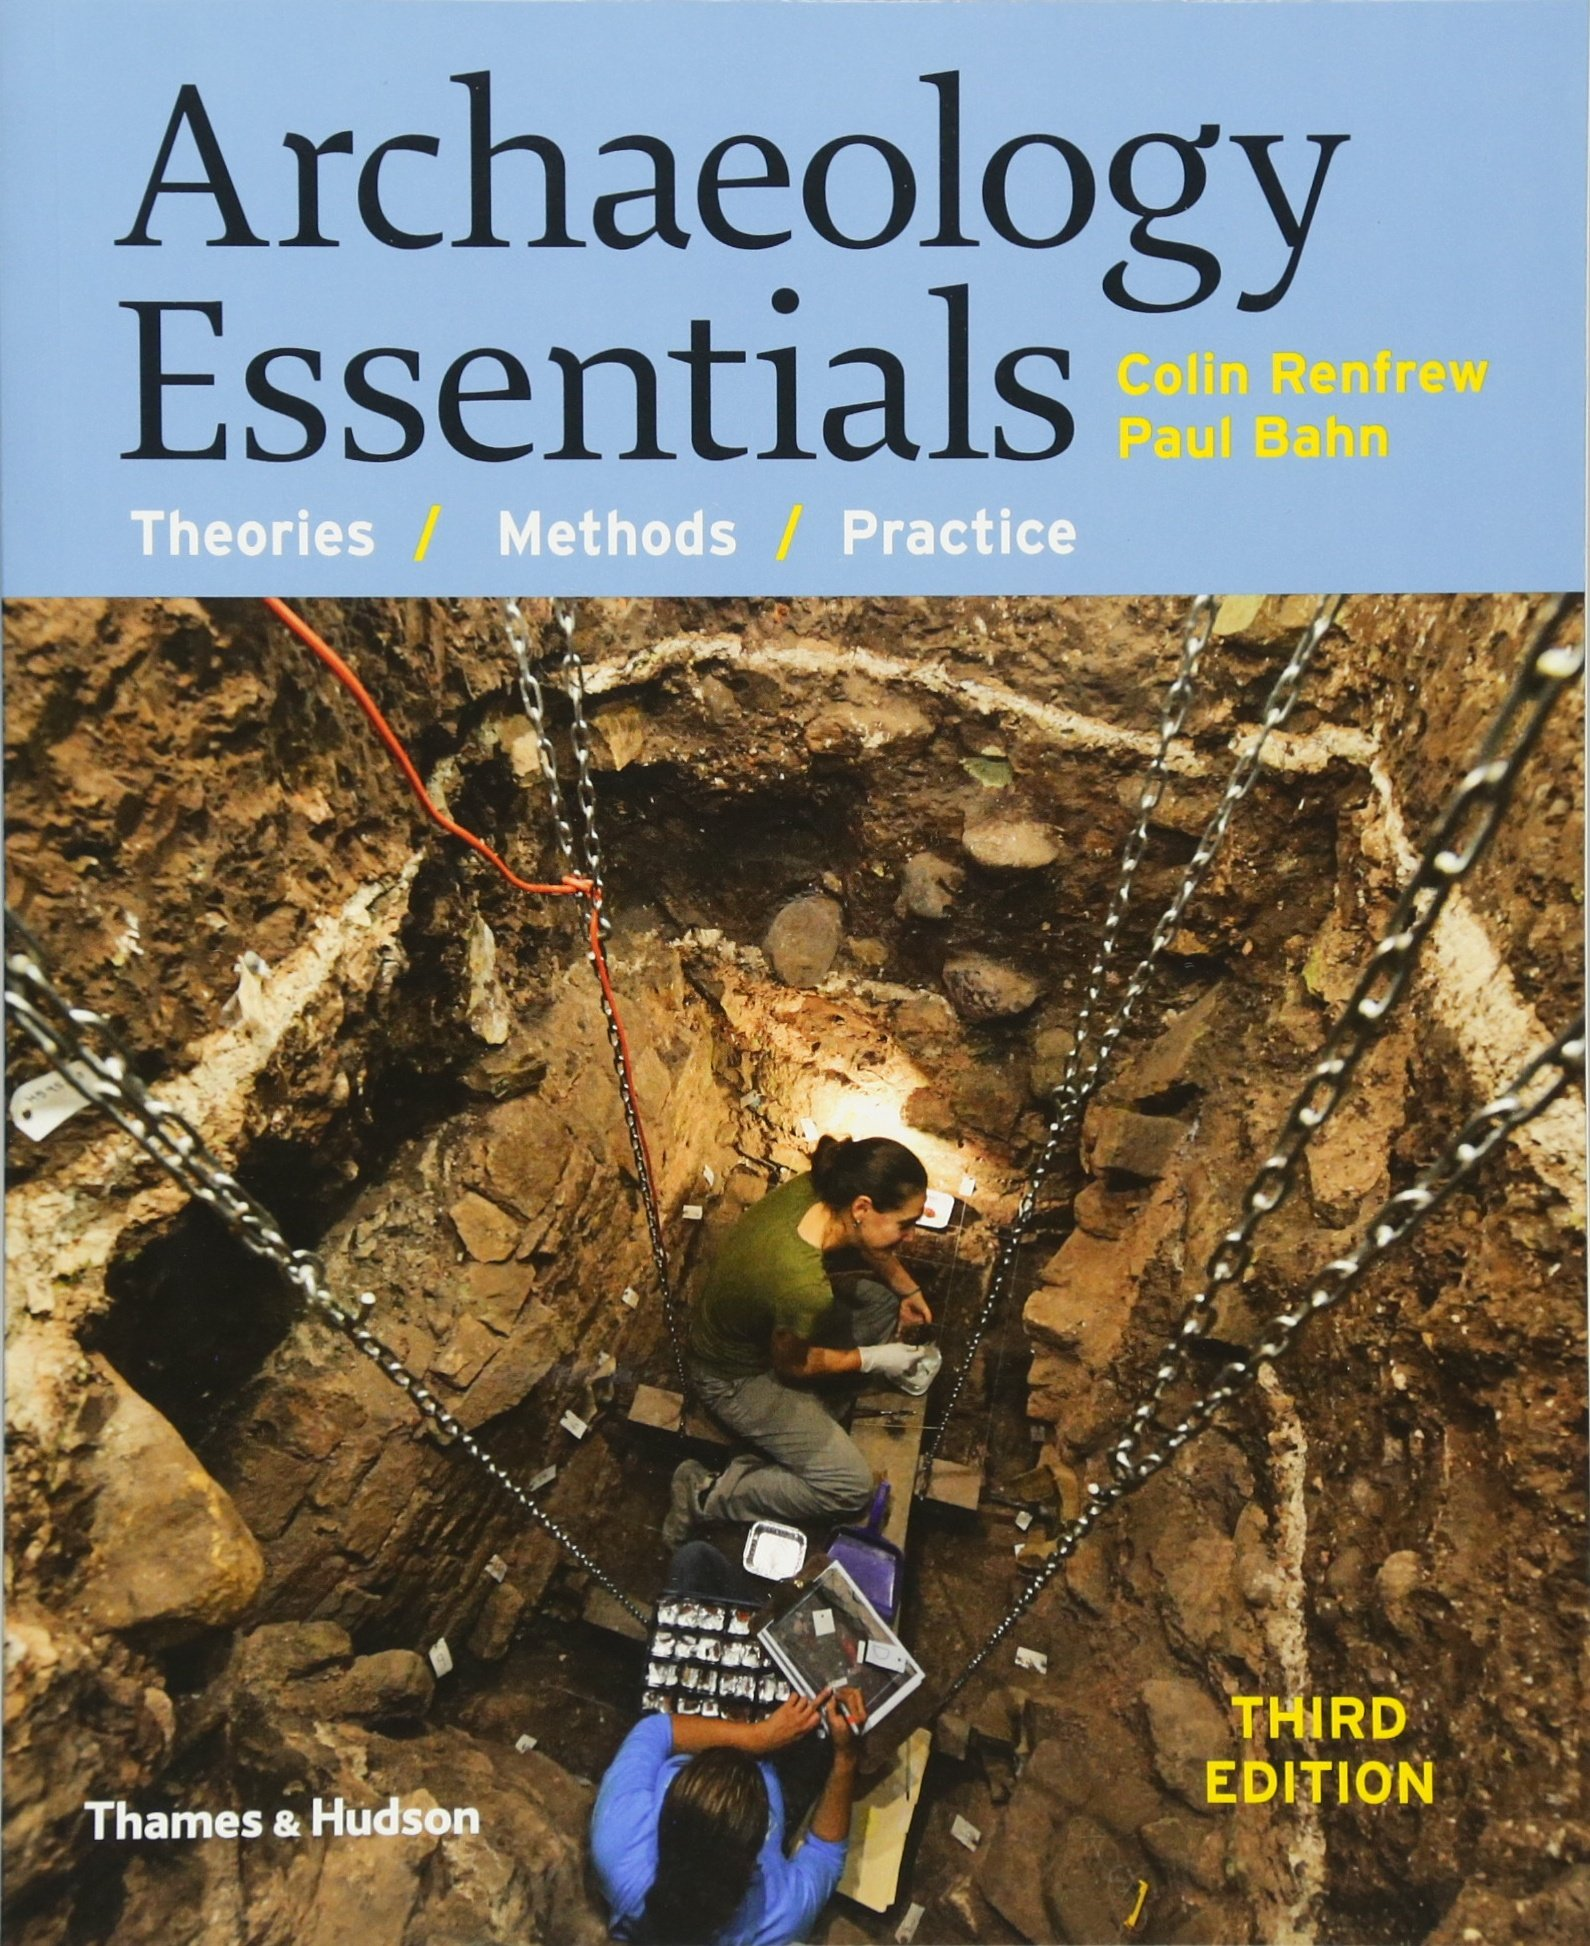 Archaeology Essentials: Theories, Methods, and Practice (Third Edition)